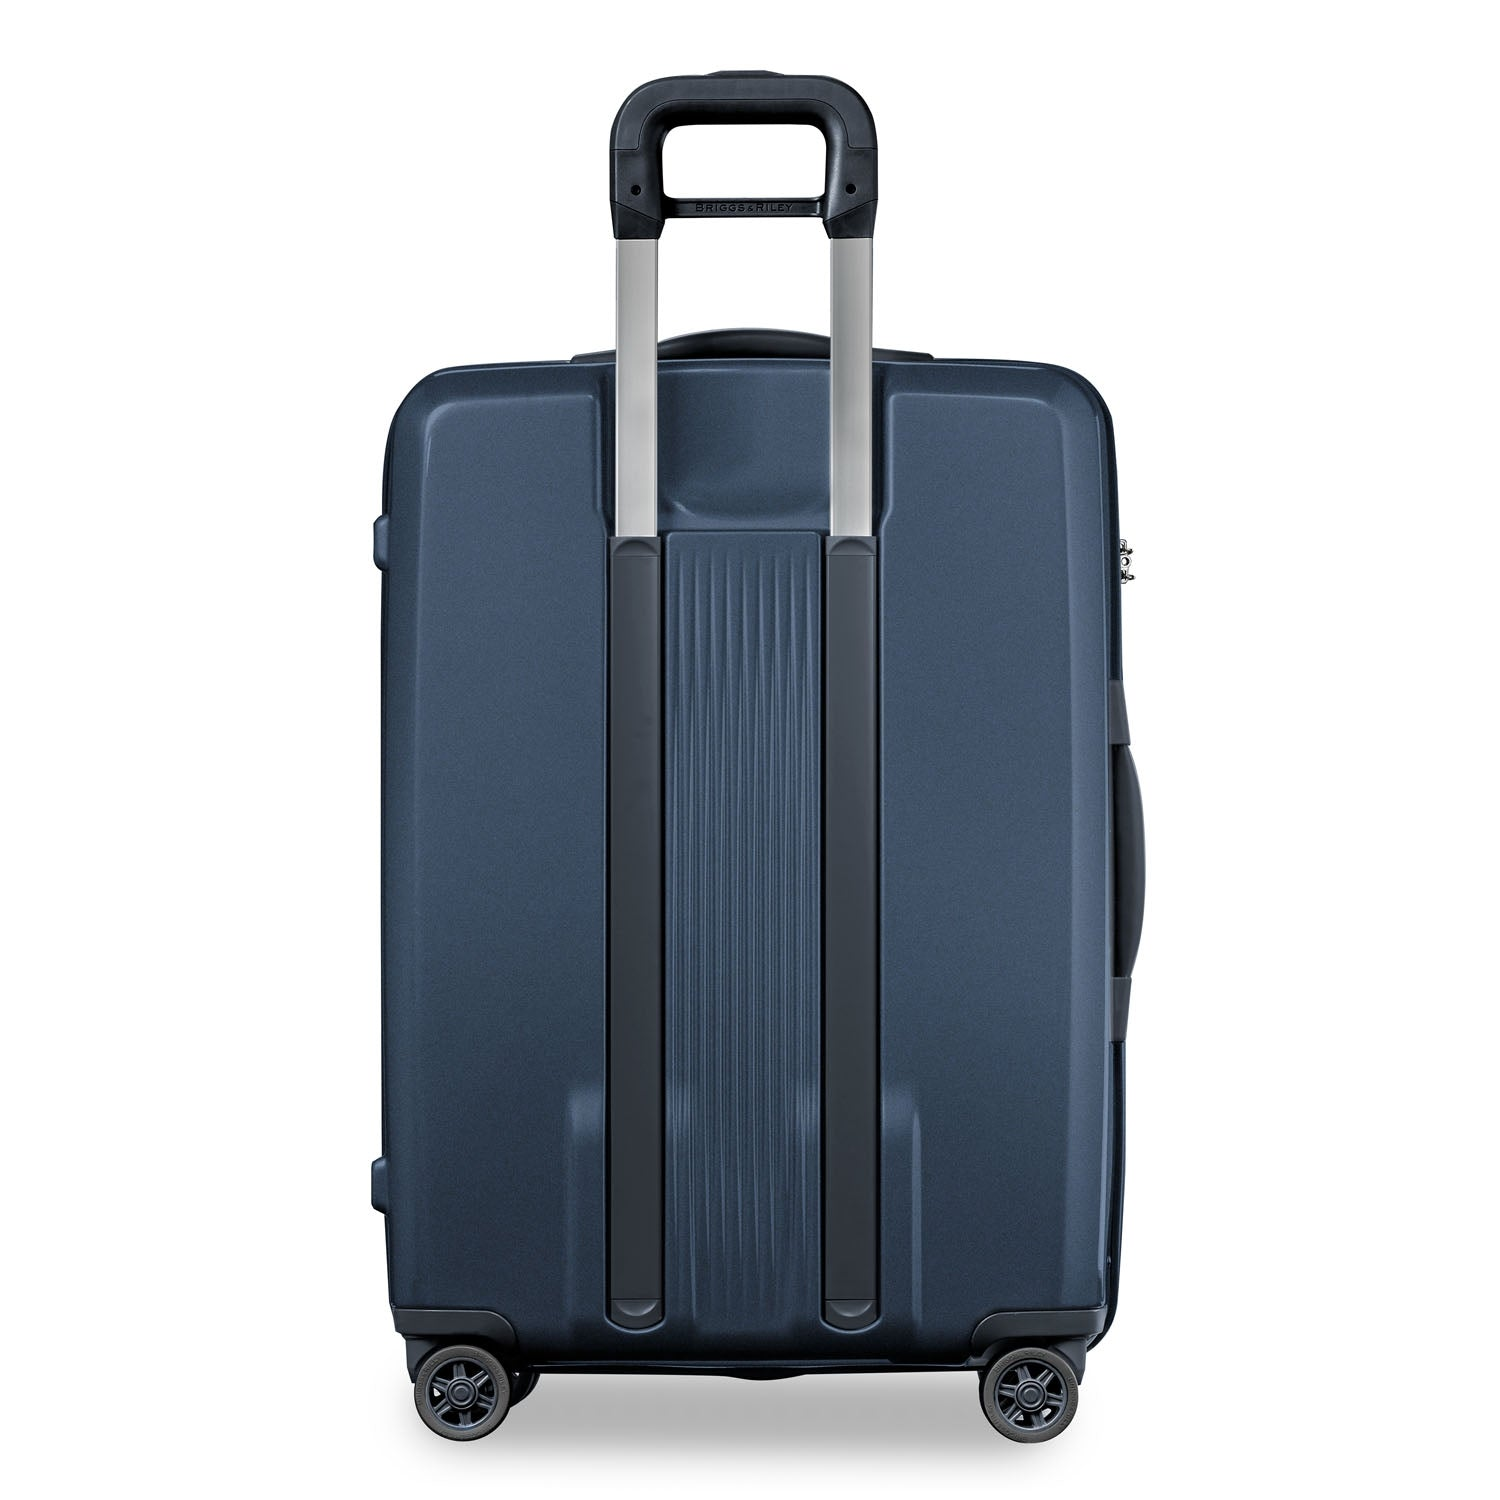 127 Best Luggage & Bags images | Luggage bags, Bags